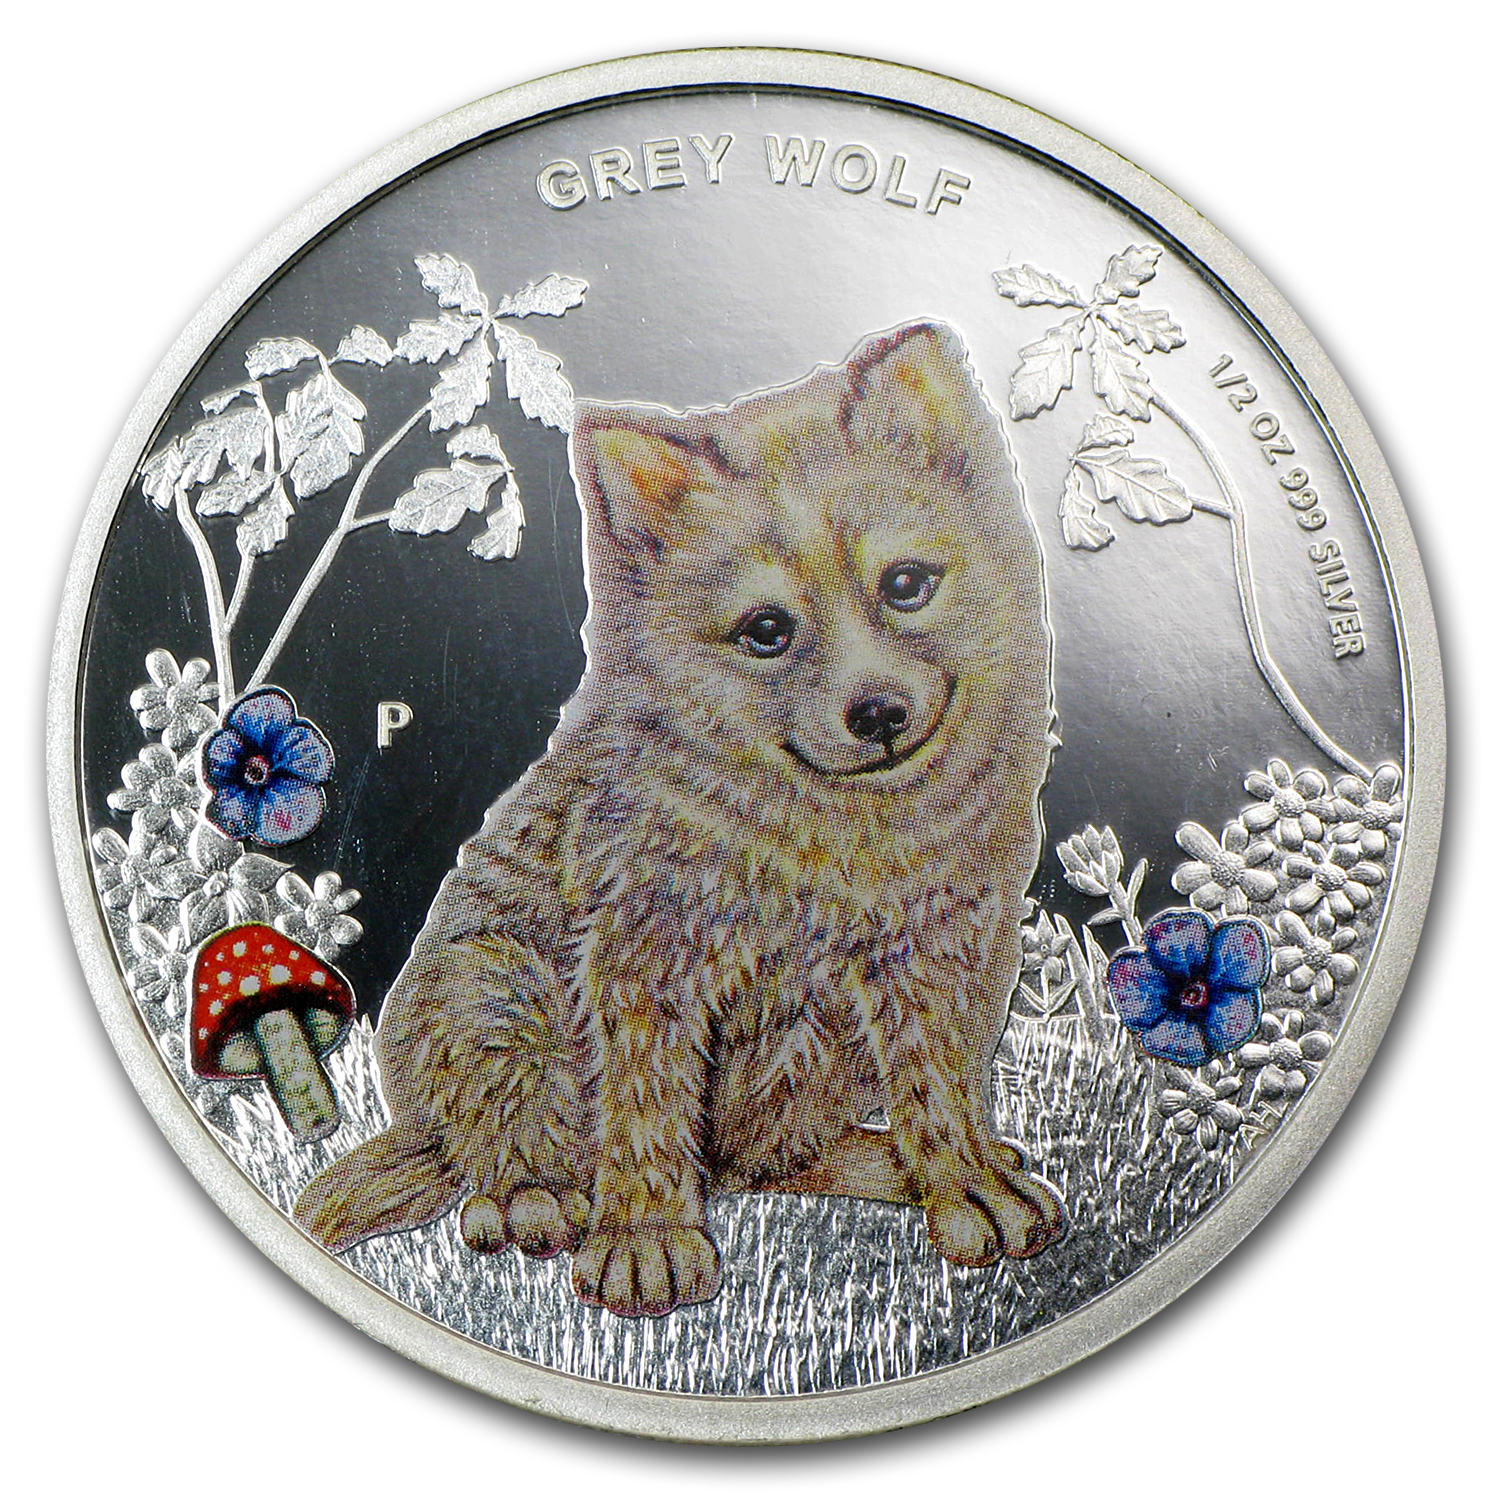 2013 1/2 oz Proof Silver Forest Babies - Grey Wolf